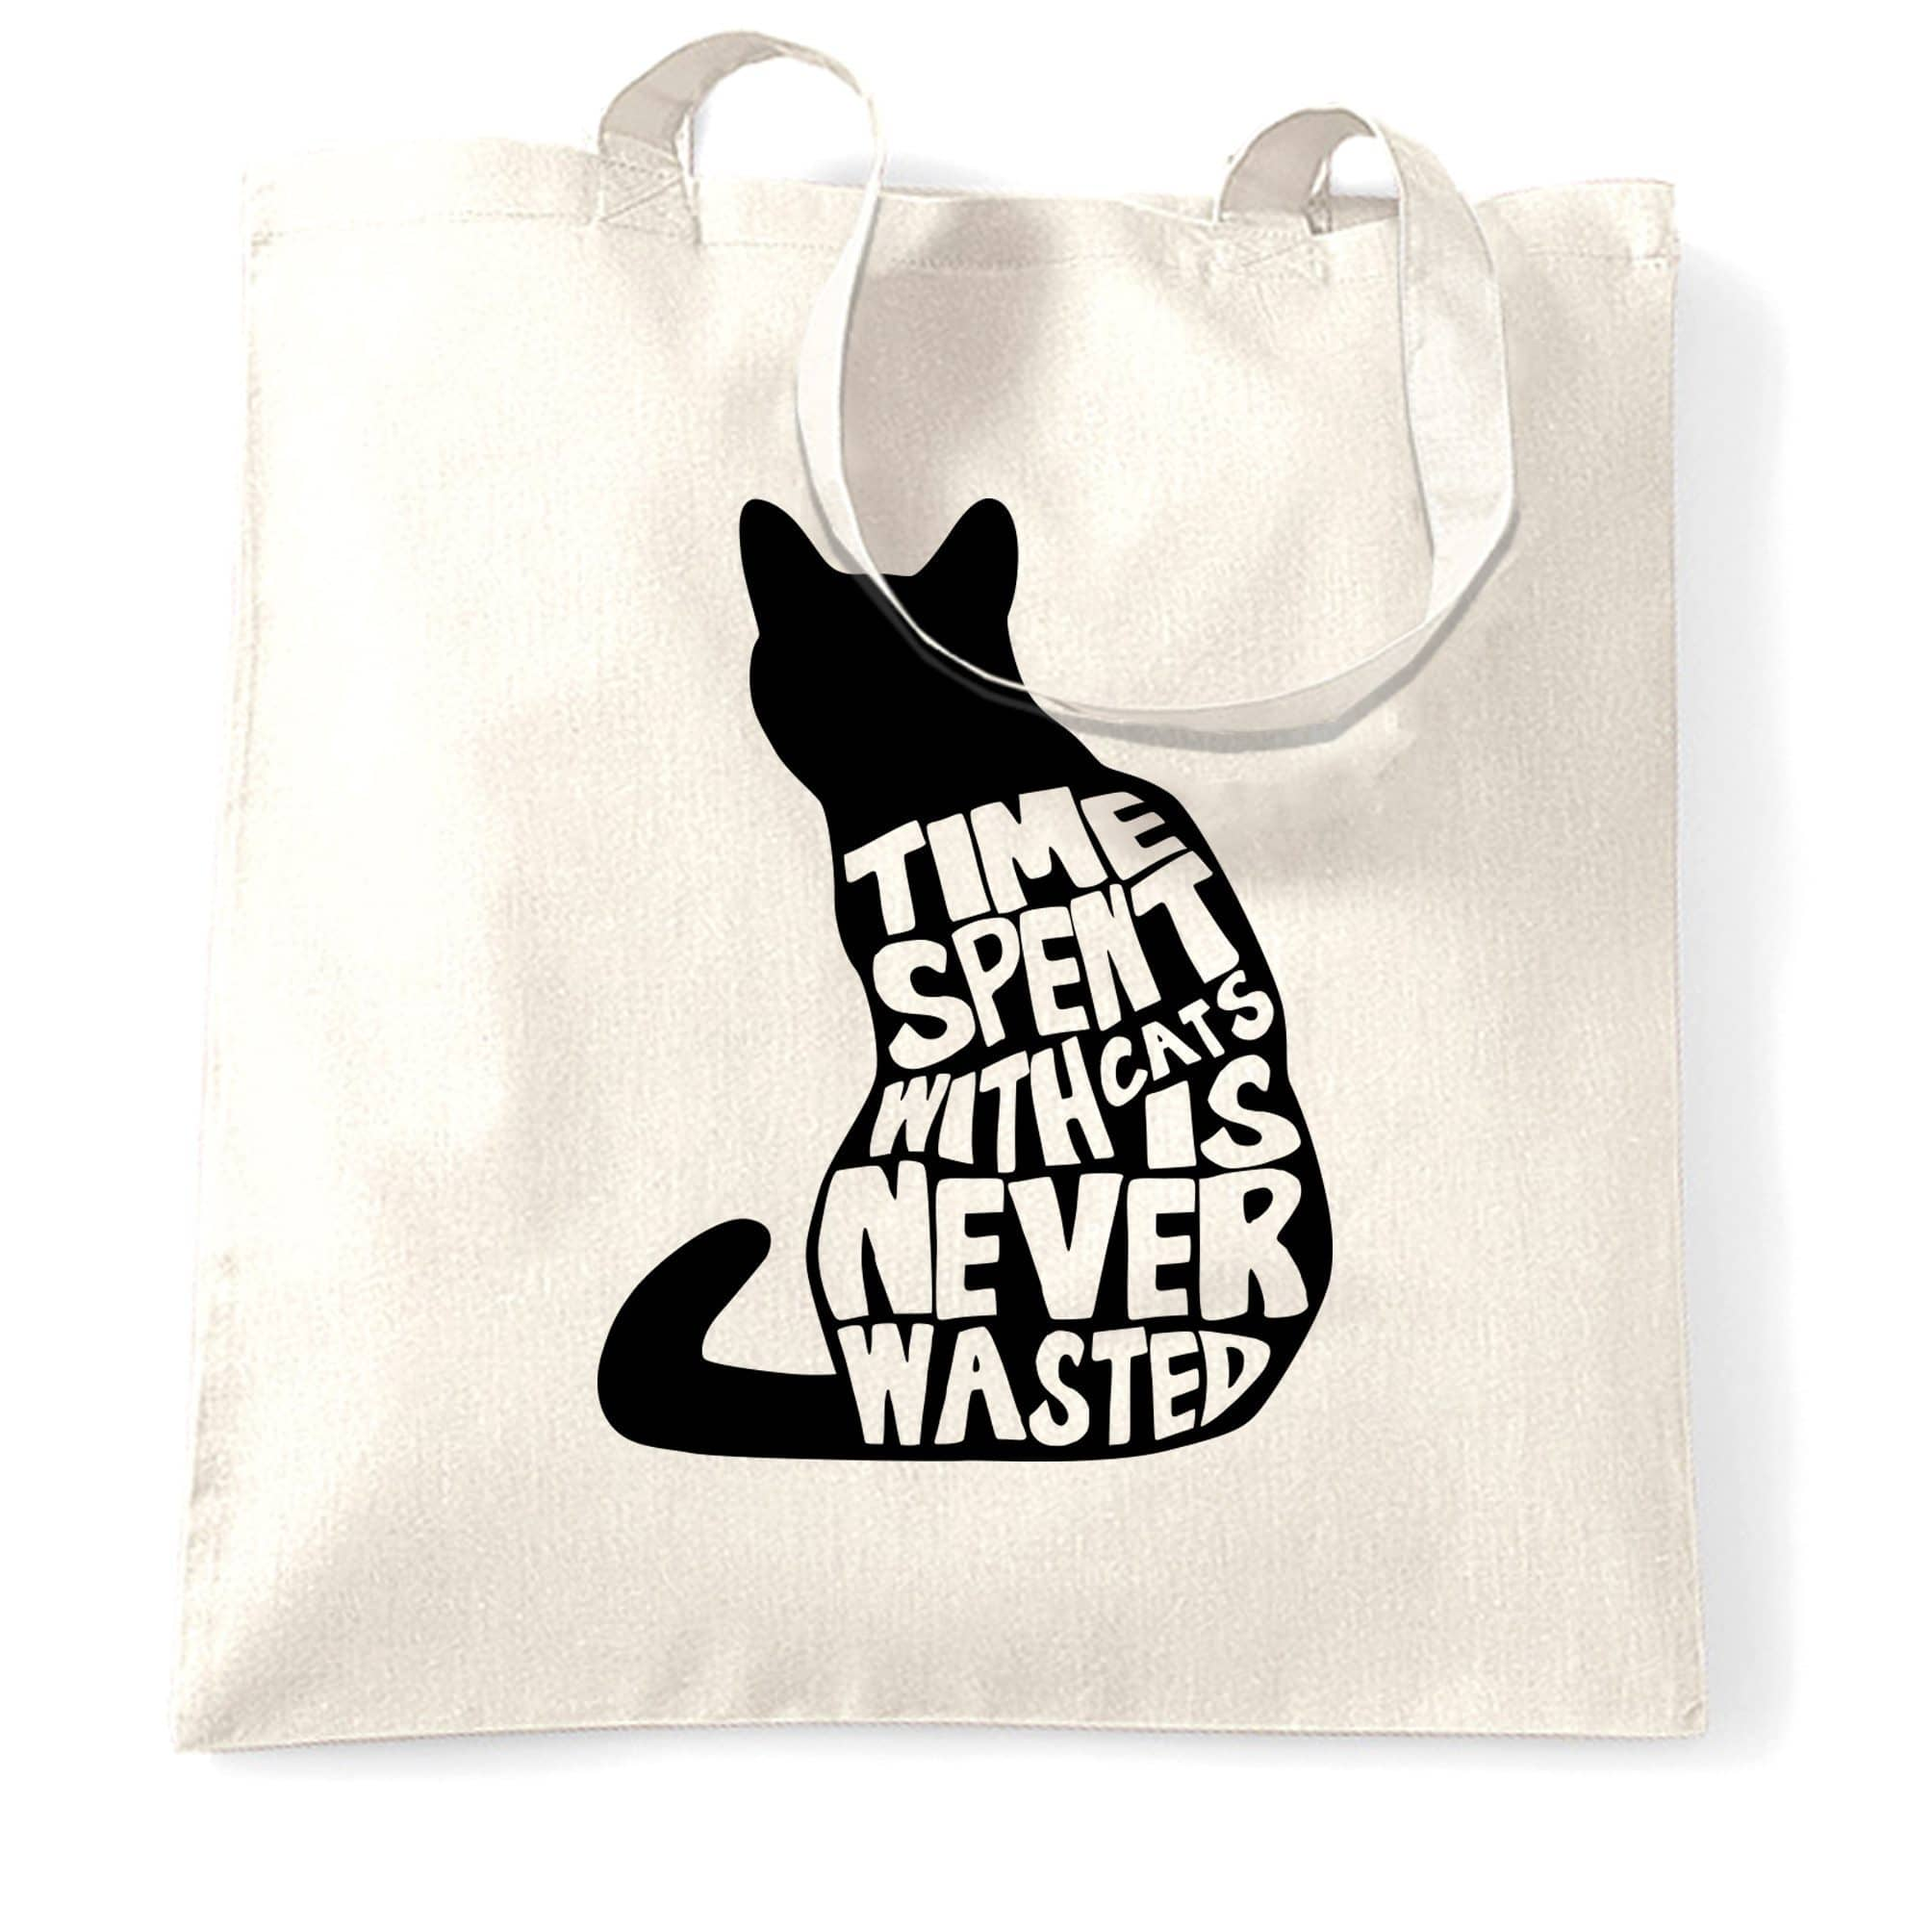 Cat Lover Tote Bag Time Spent With Cats is Never Wasted